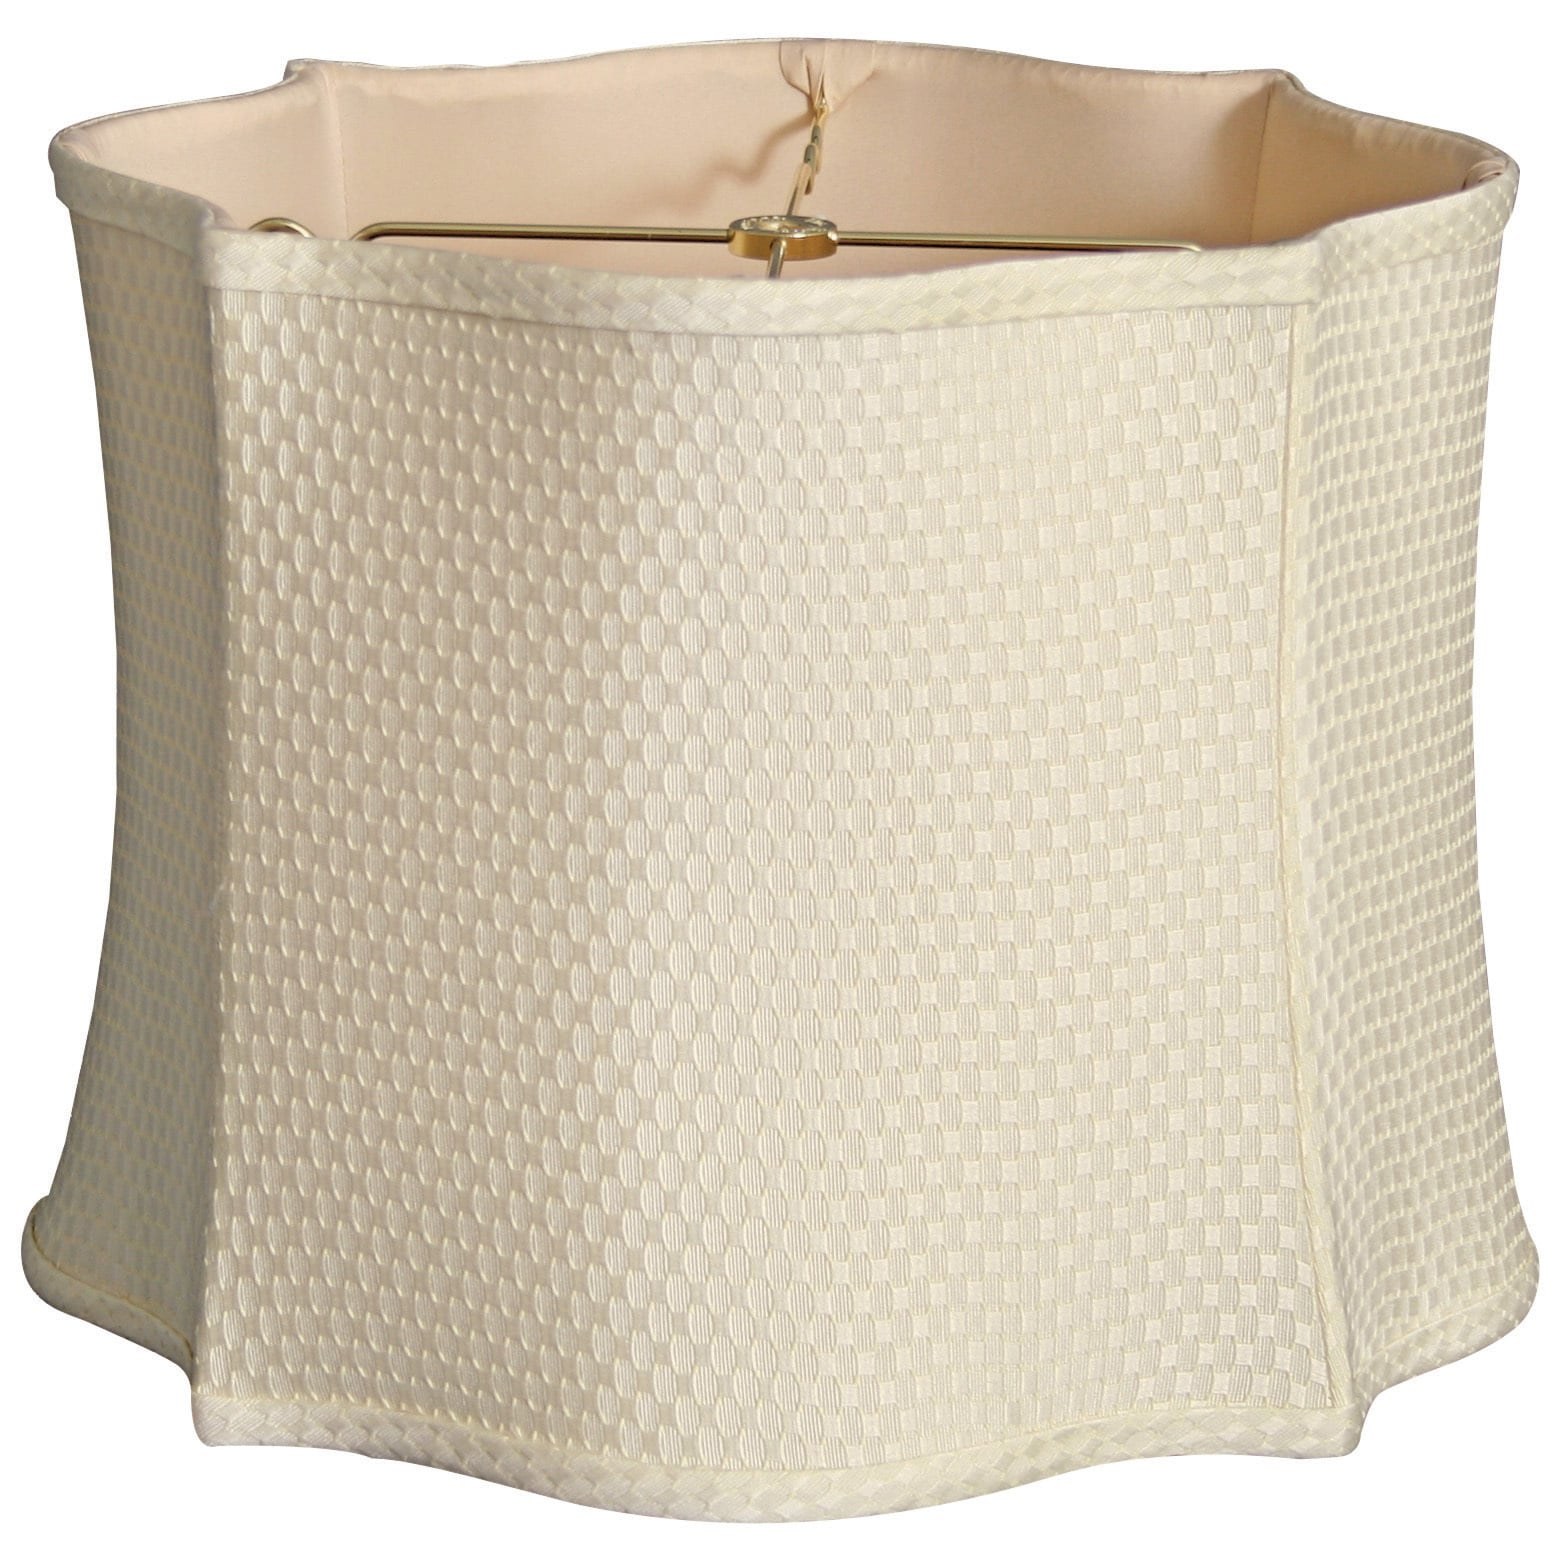 Shop Royal Designs Fancy Scalloped Square Designer Lamp Shade Cream 12 X 13 X 10 Overstock 15274702